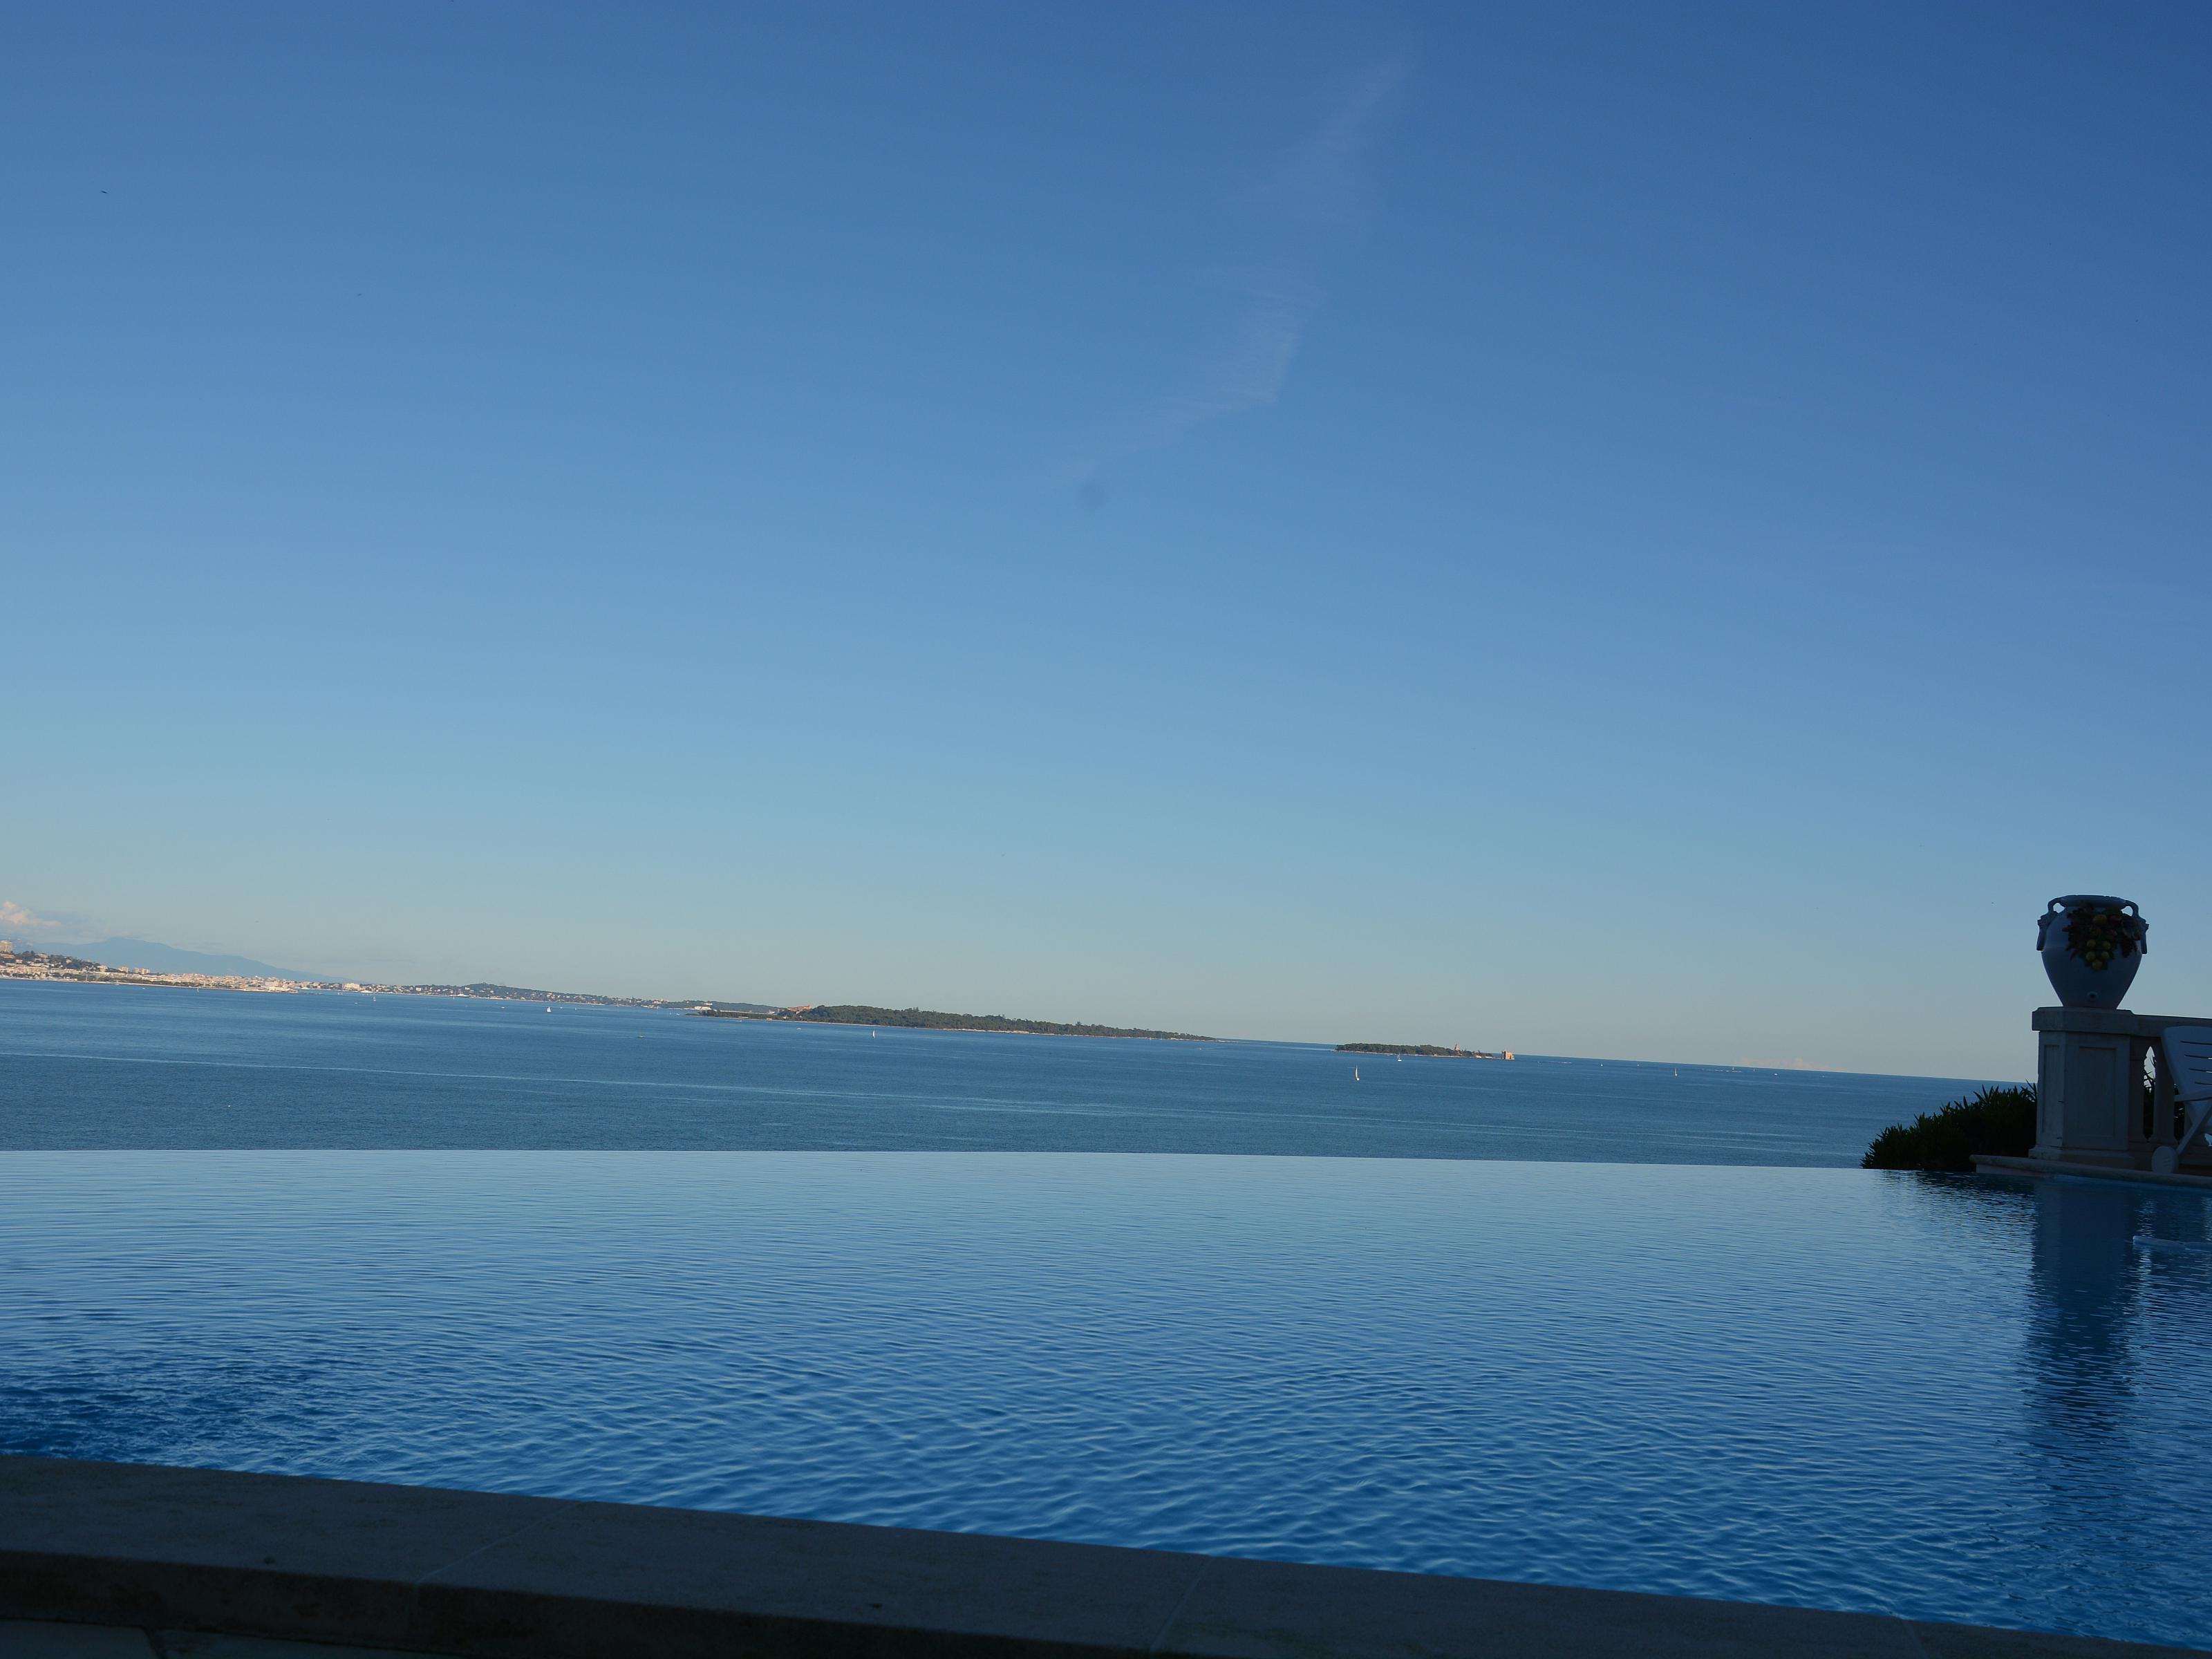 Villa per Vendita alle ore Large Waterfront Estate on the Bay of Cannes Théoule sur Mer Theoule Sur Mer, Provenza-Alpi-Costa Azzurra 06590 Francia